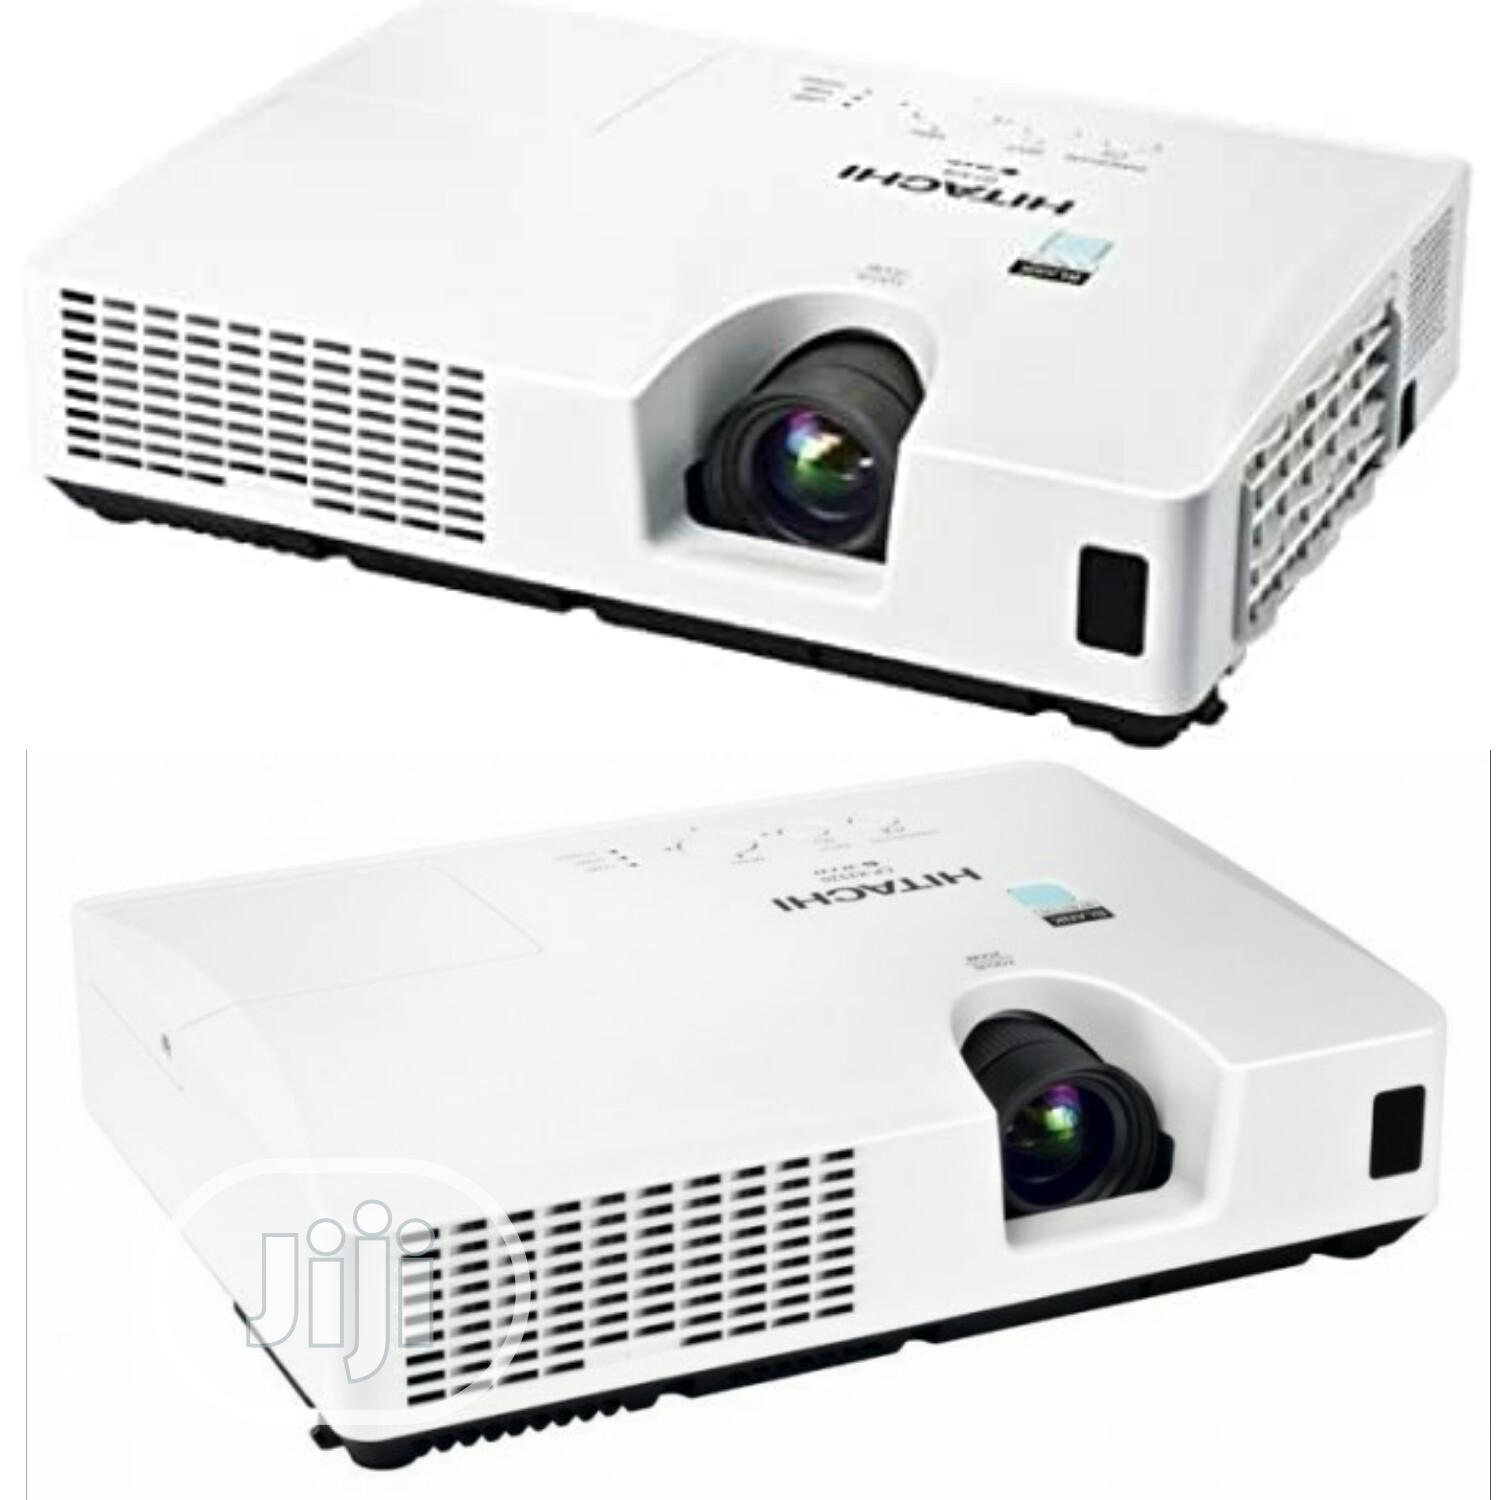 Verys Sharp And Bright Hitachi Projector For Sale